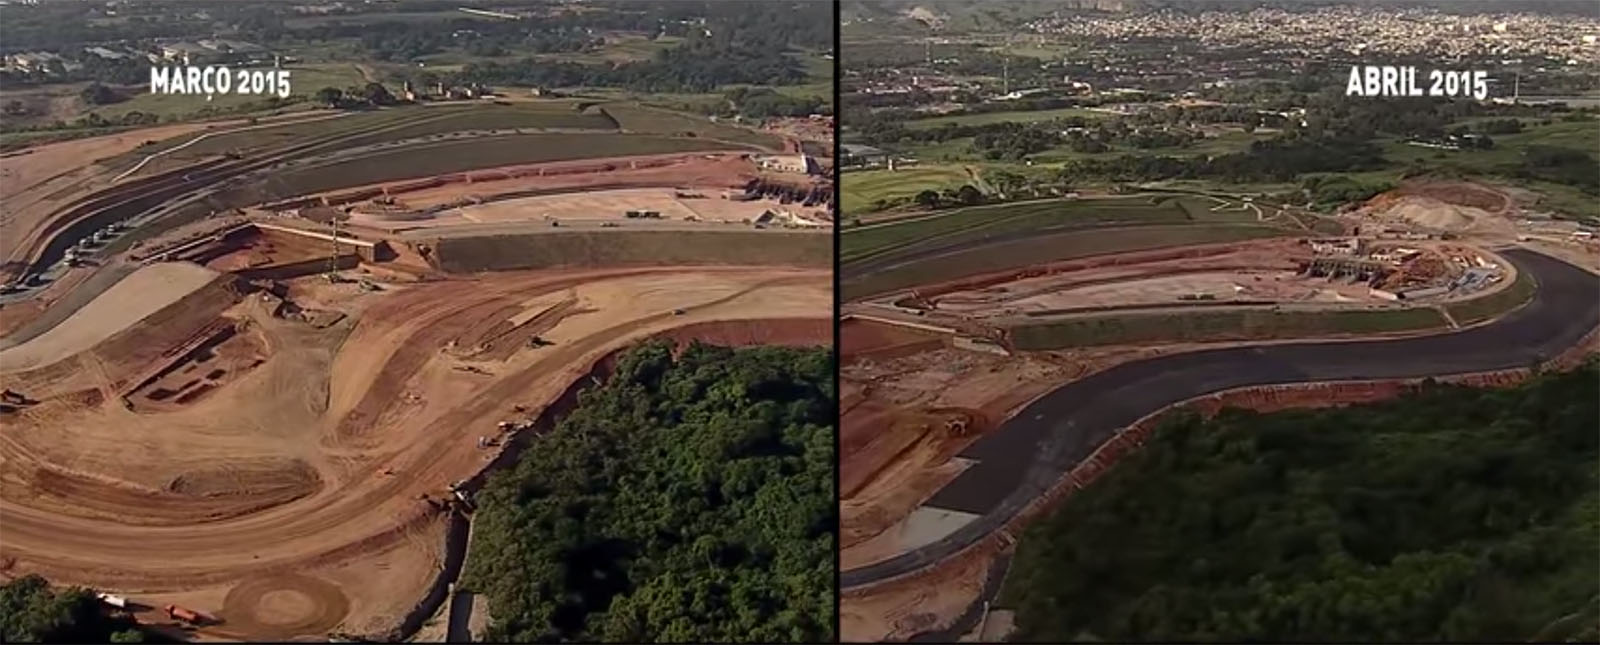 rio 2016 progress 2015 may